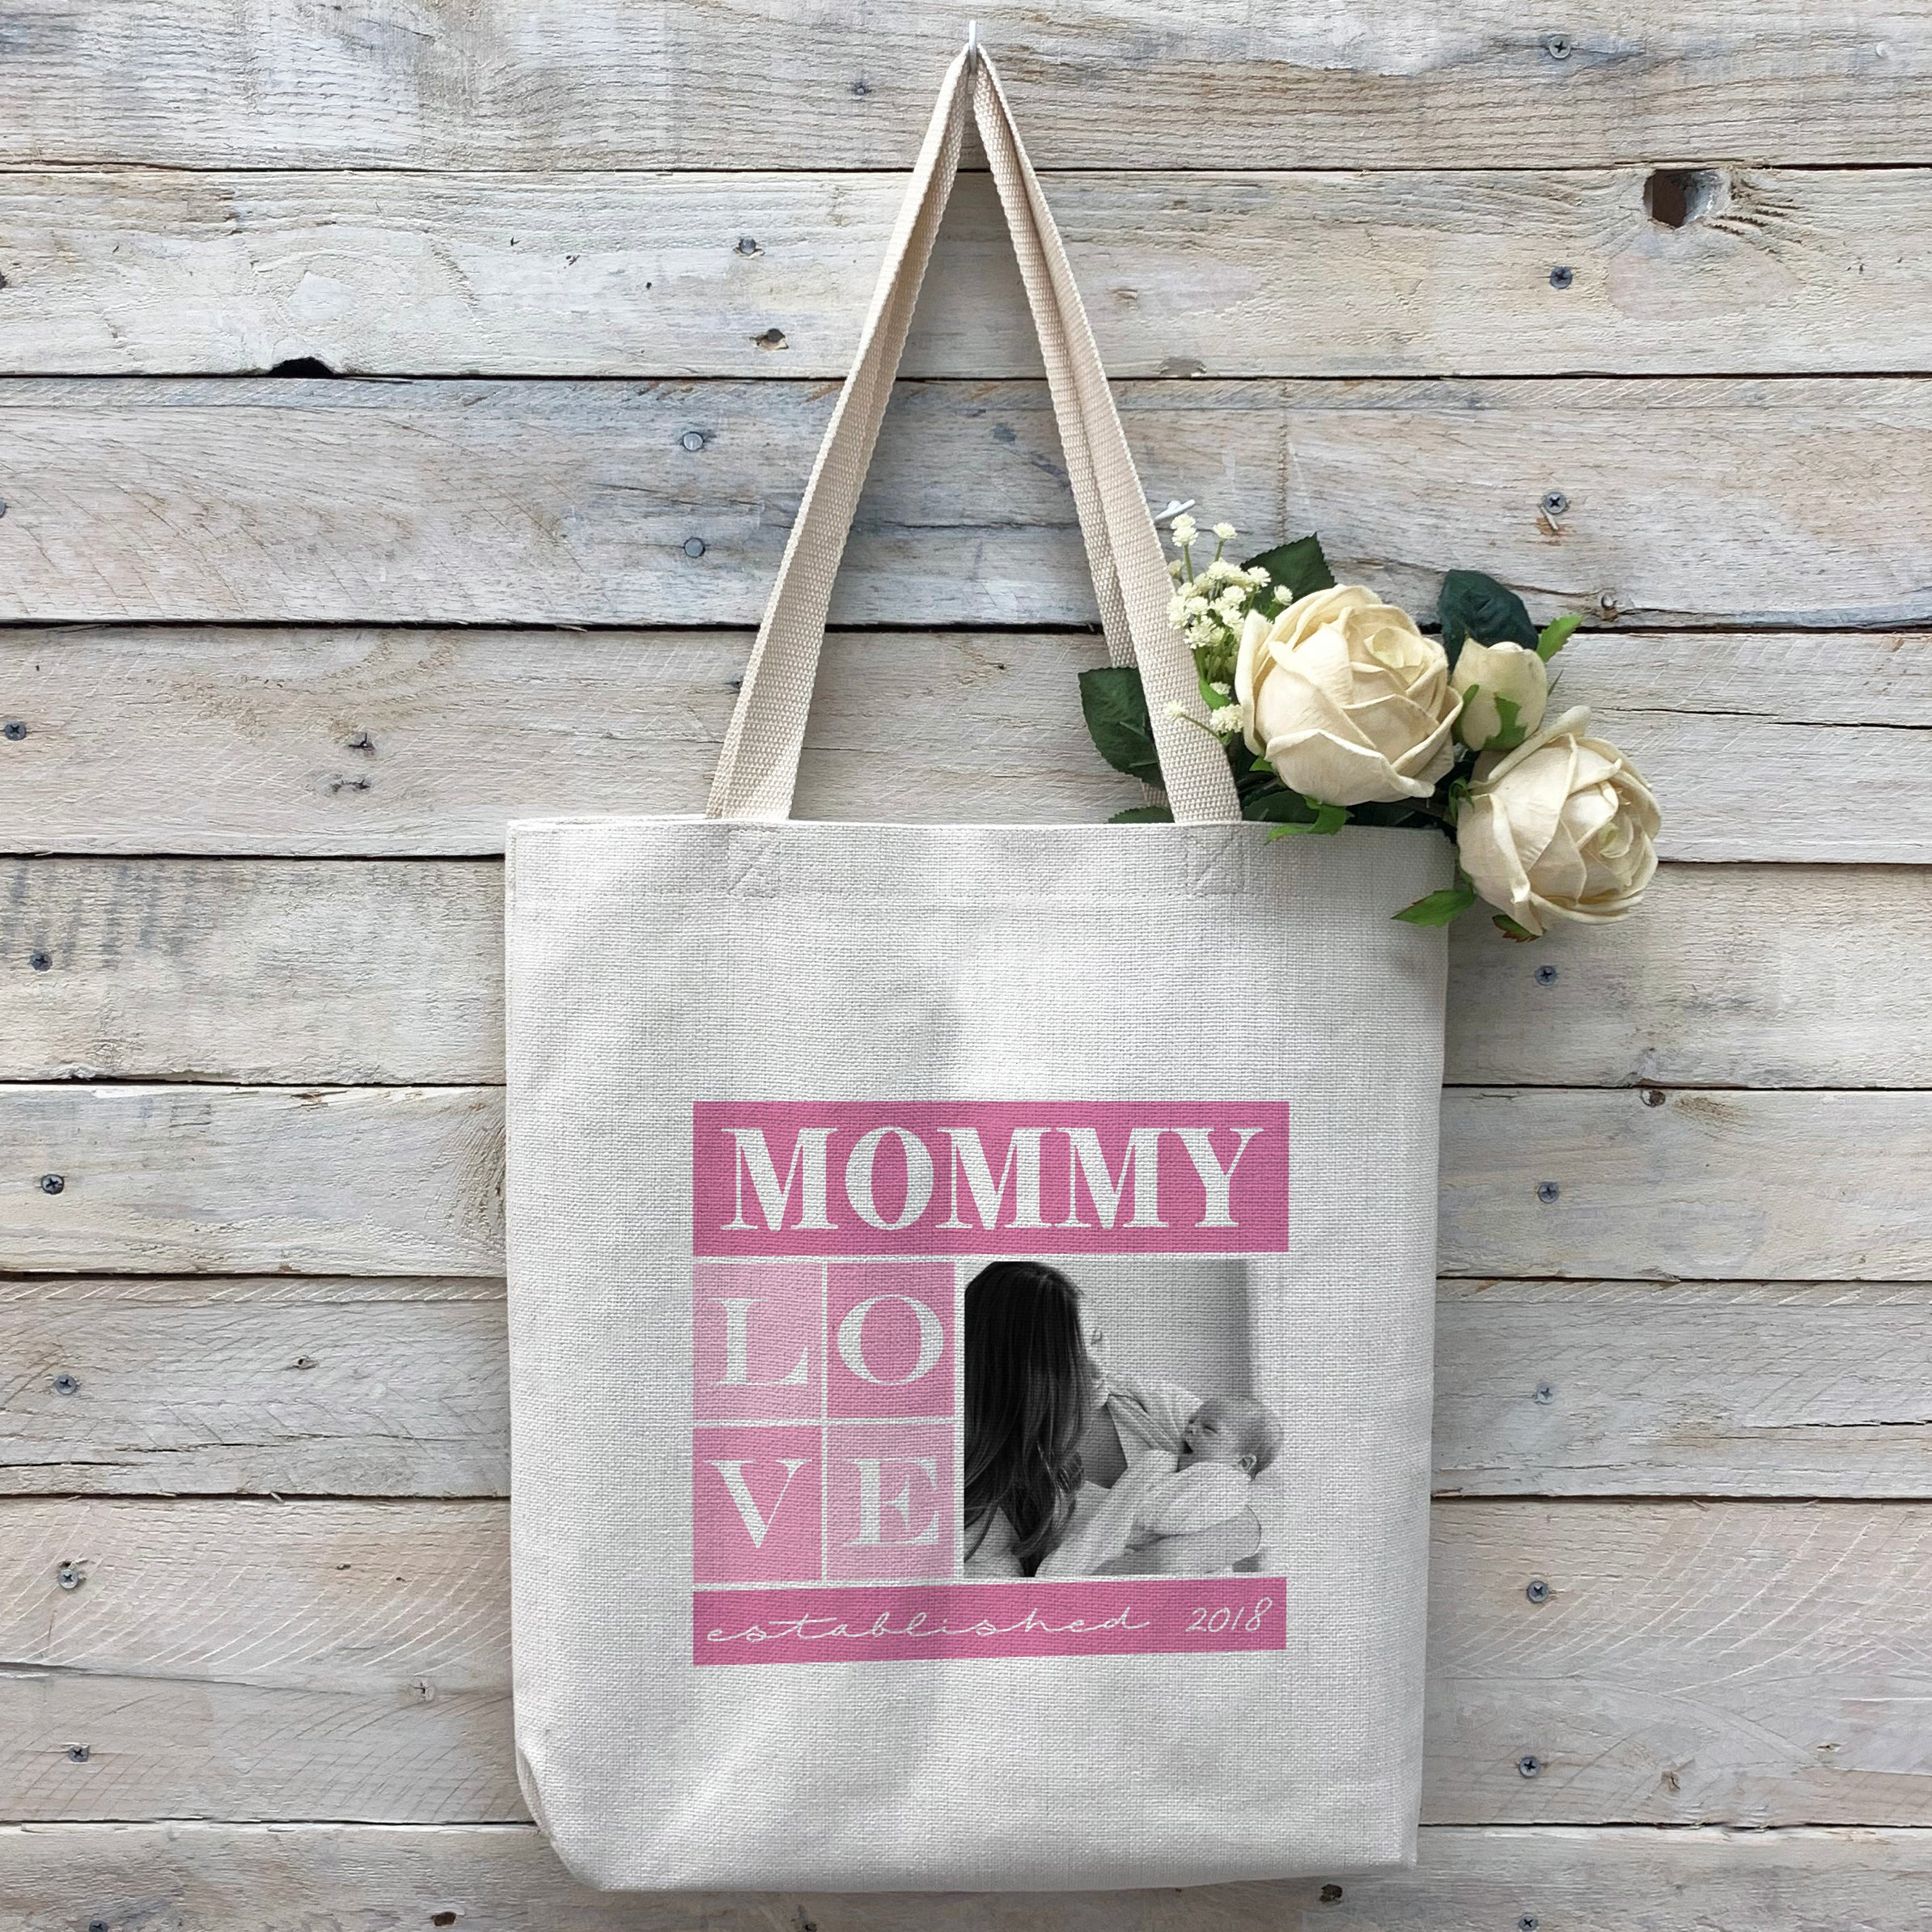 Custom Mommy Tote Bag Linen Bag Personalized Tote Bag Custom Bag Personalized Linen Bag Personalized Bag Custom Photo Bag Custom Picture Bag